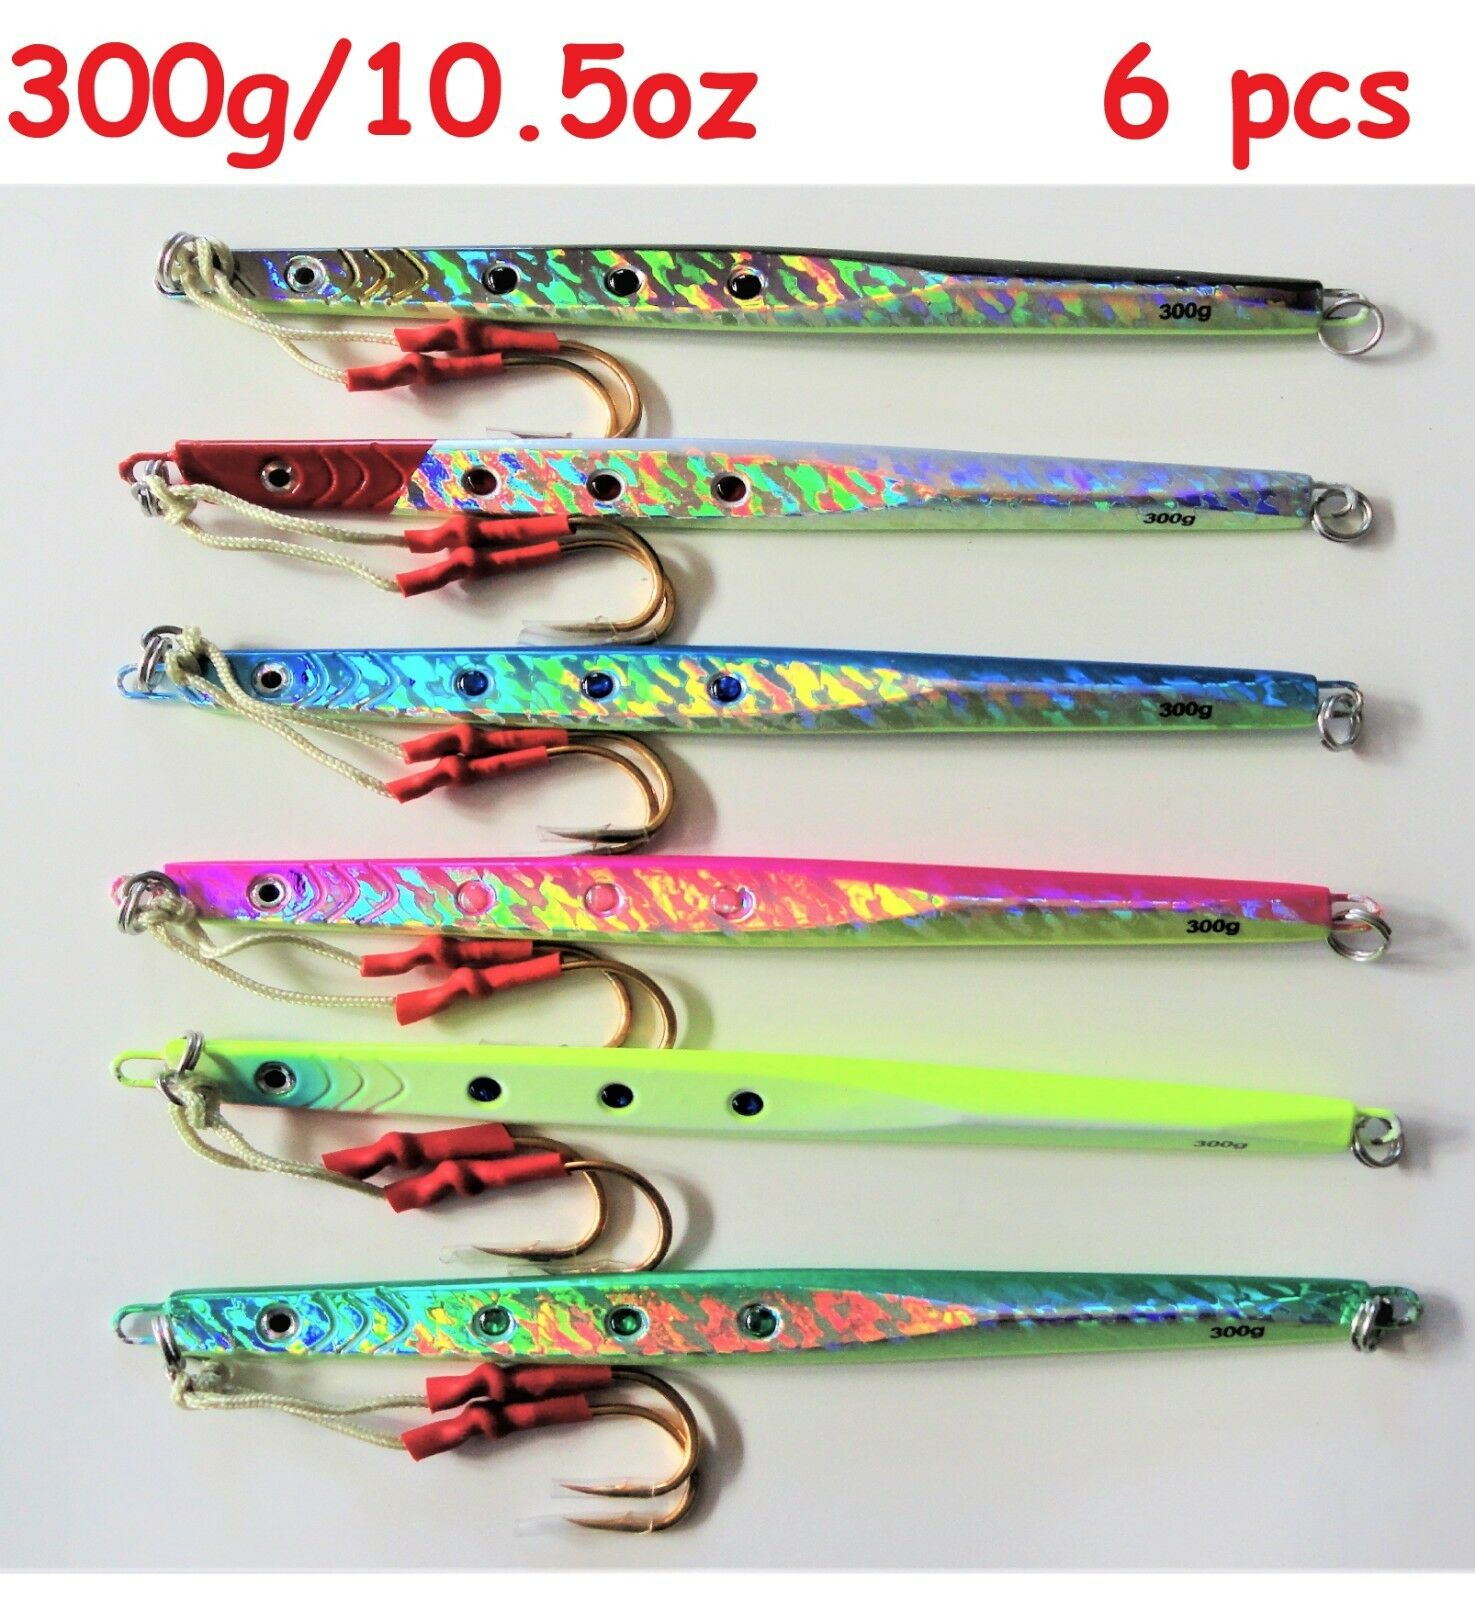 6 pcs 300g 10oz Speed verdeical Butterfly Jigs Saltwater Fishing Lures With Bag